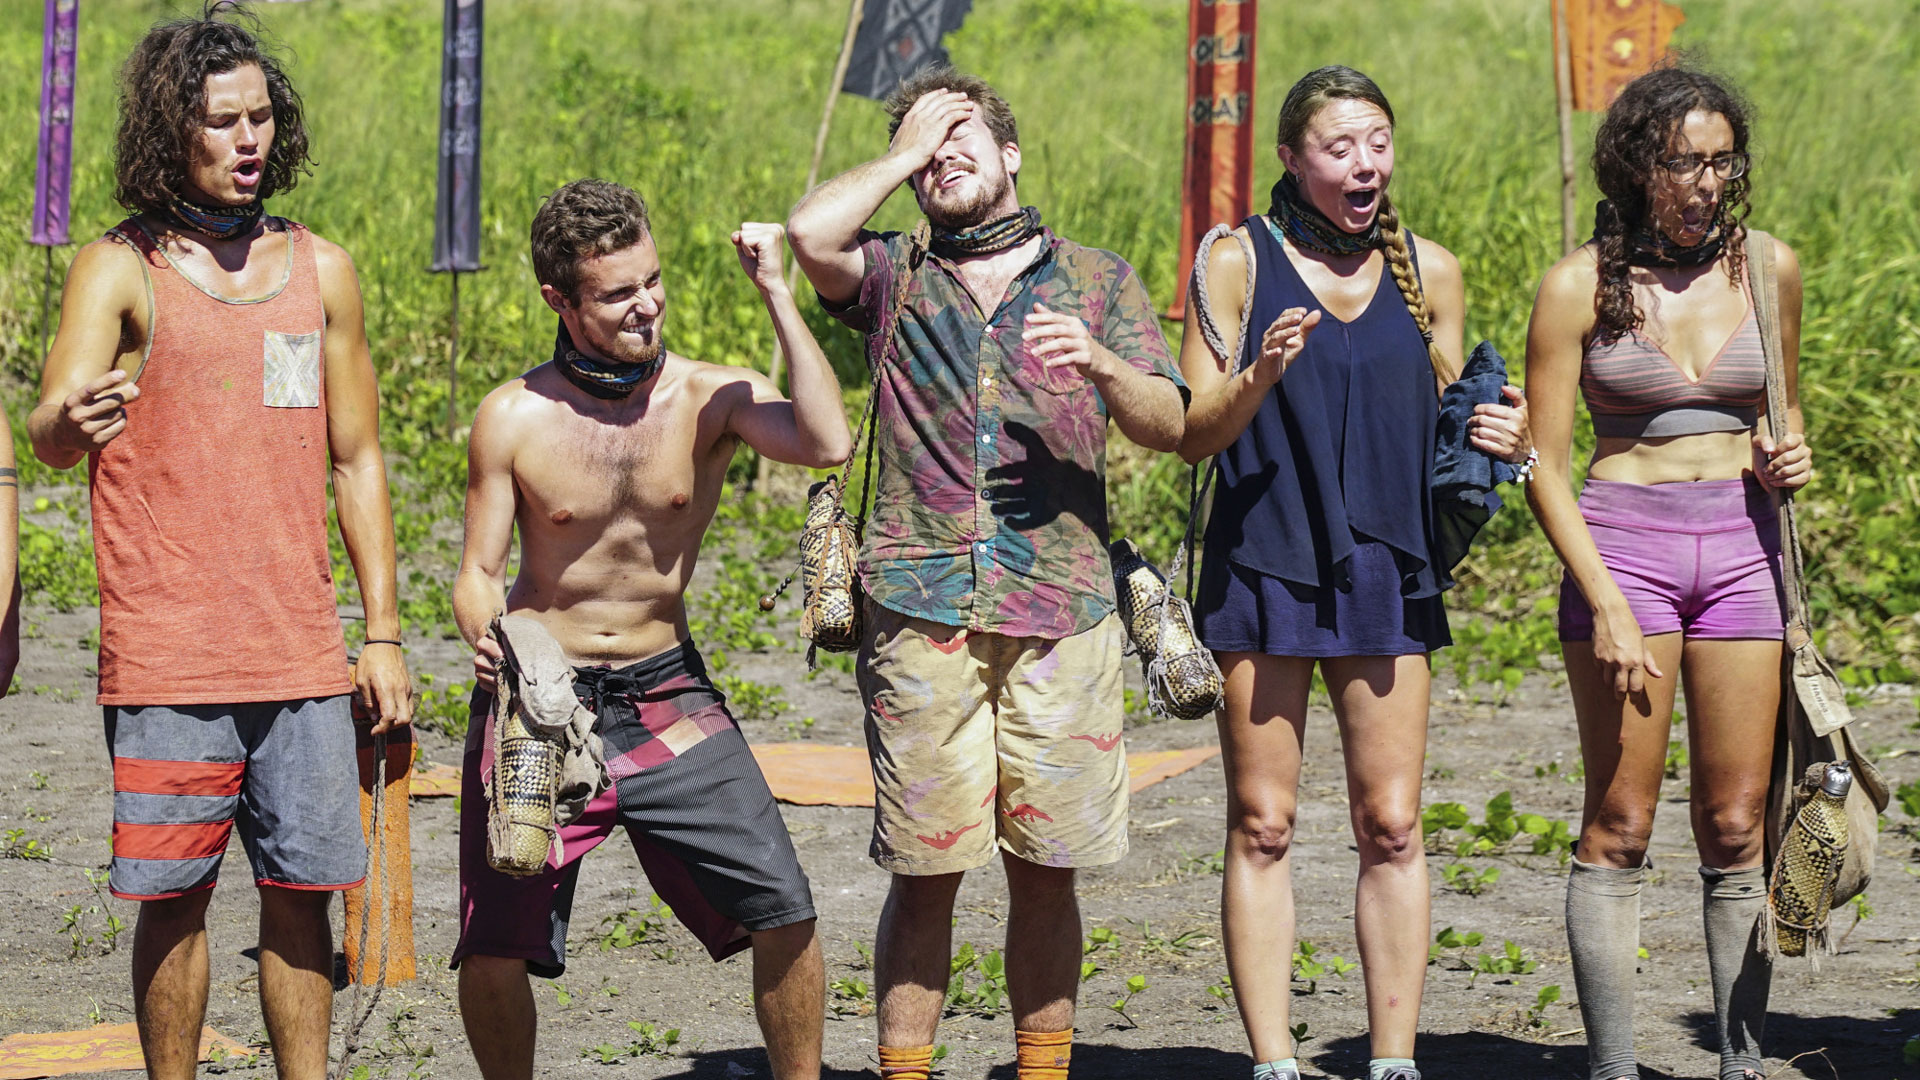 Which two castaways will be throwing punches after the merge?